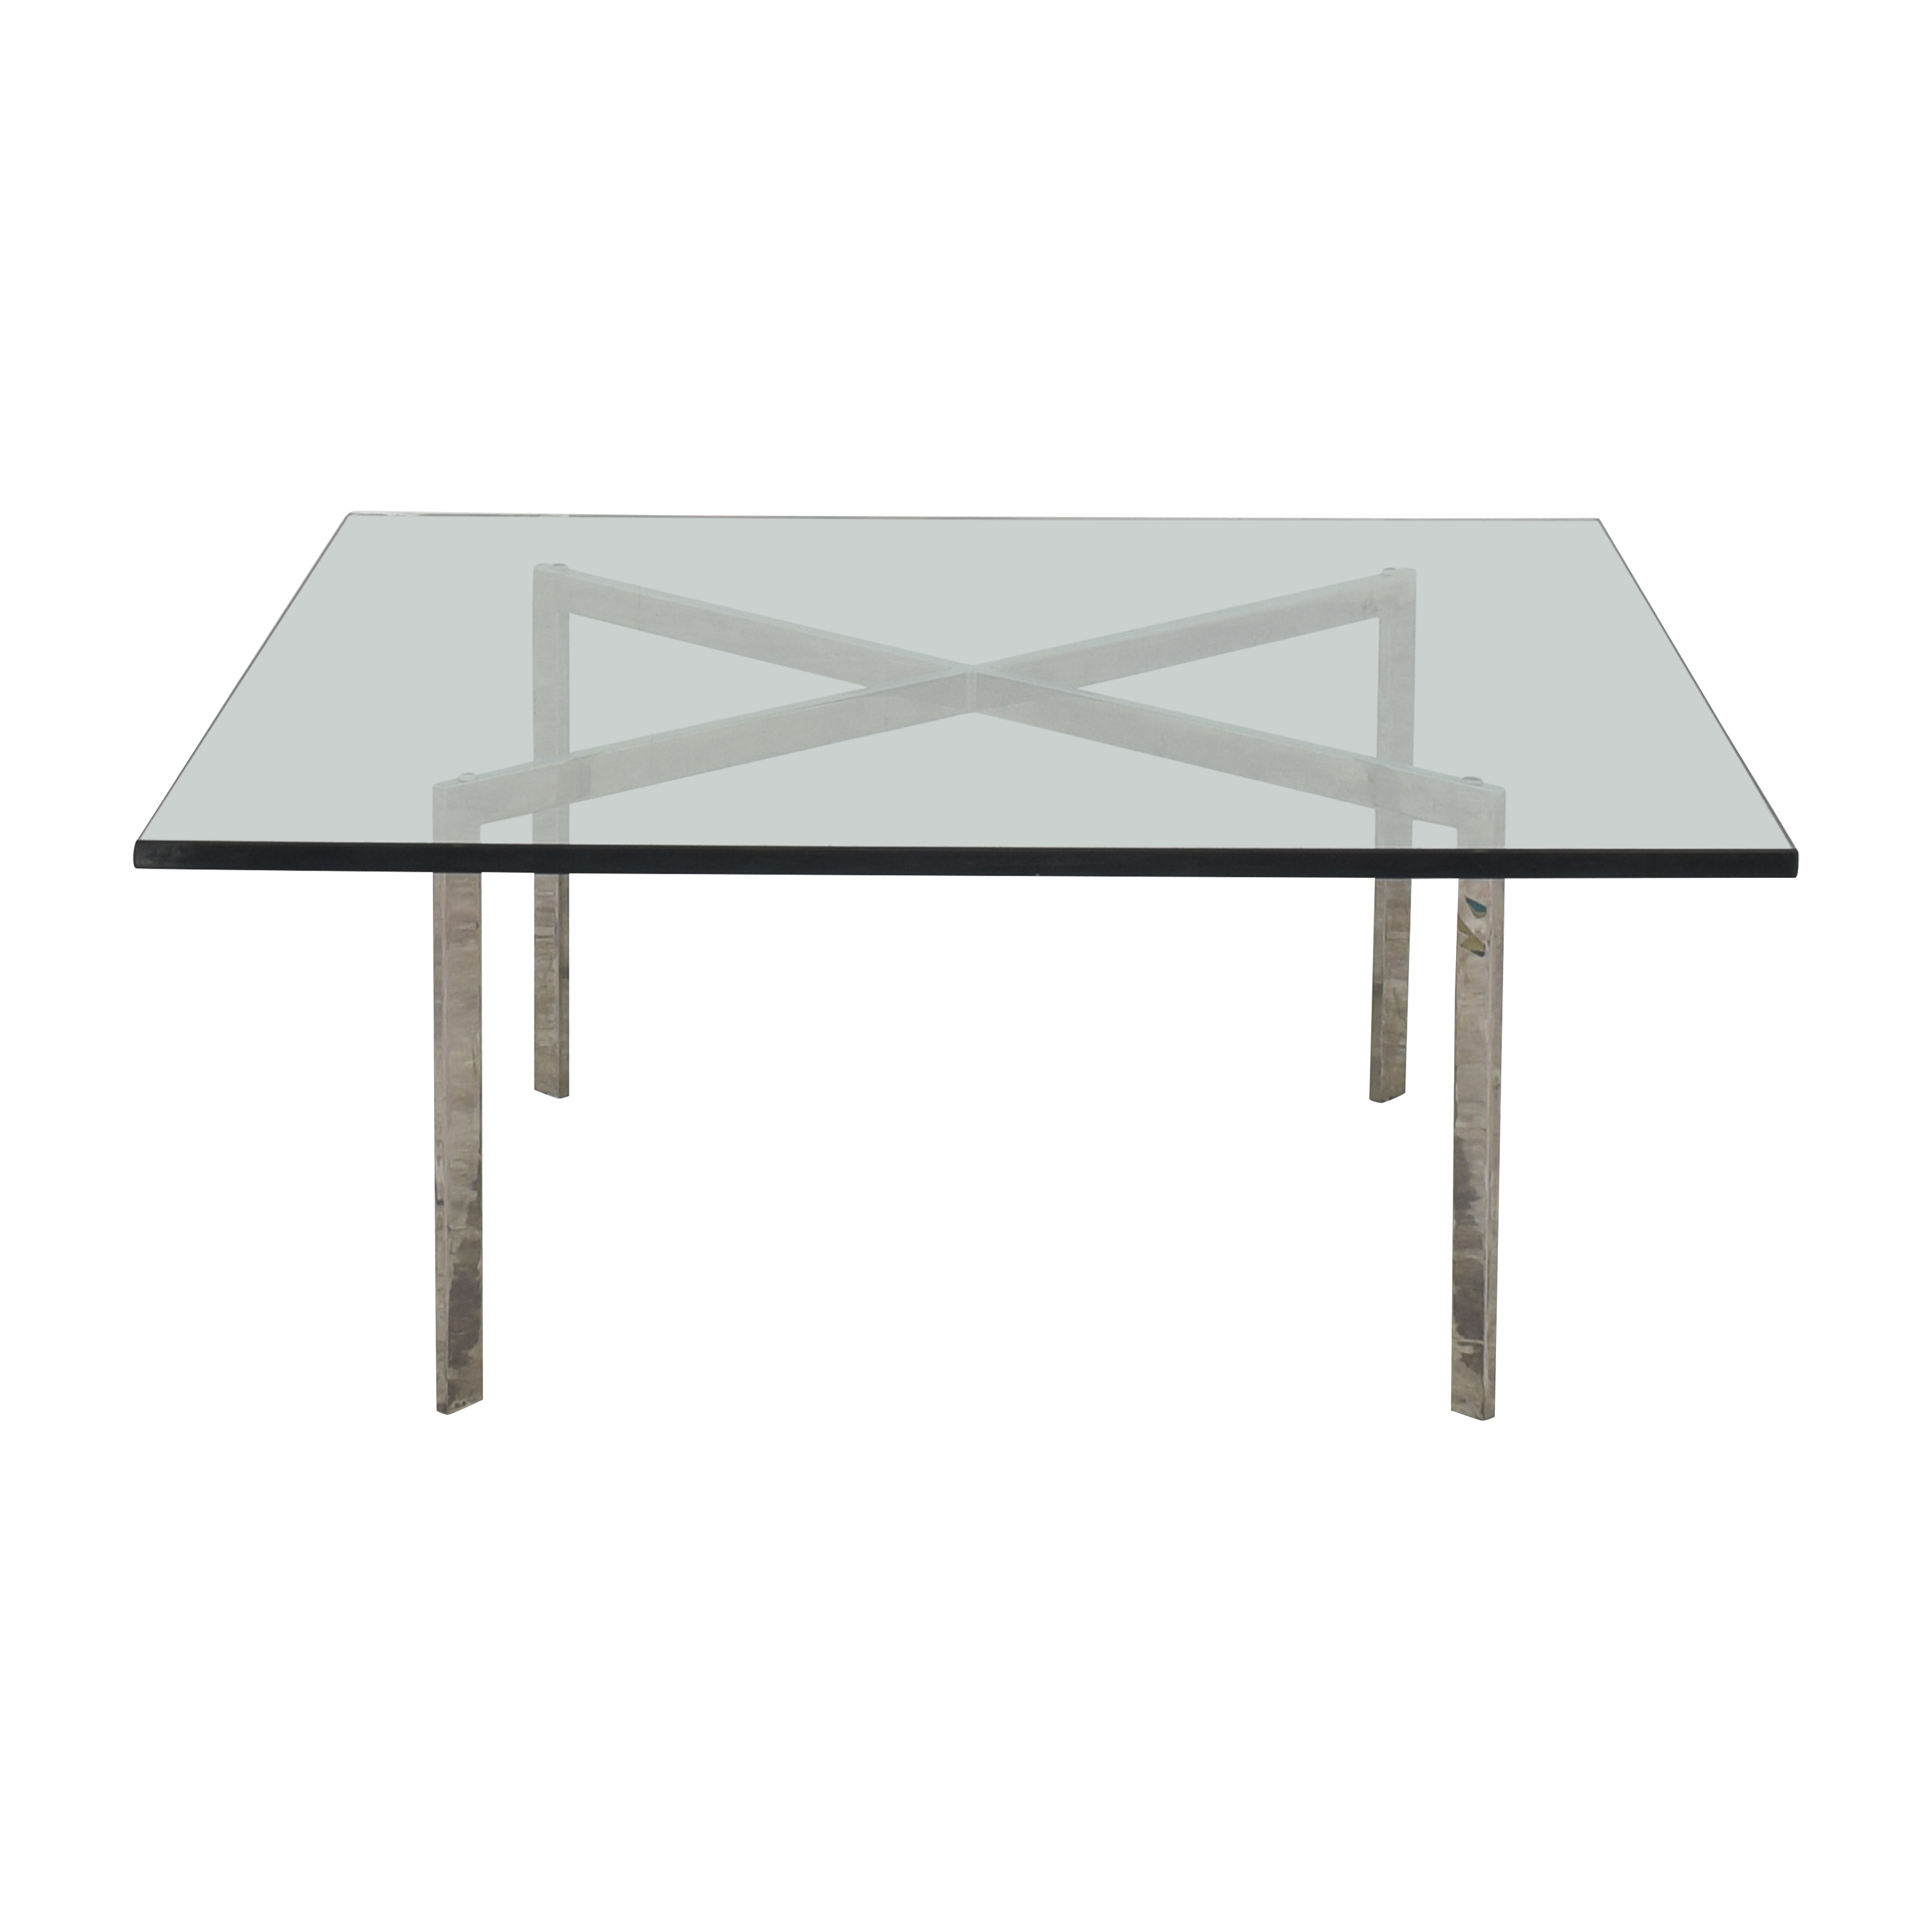 Barcelona-Style Coffee Table / Coffee Tables